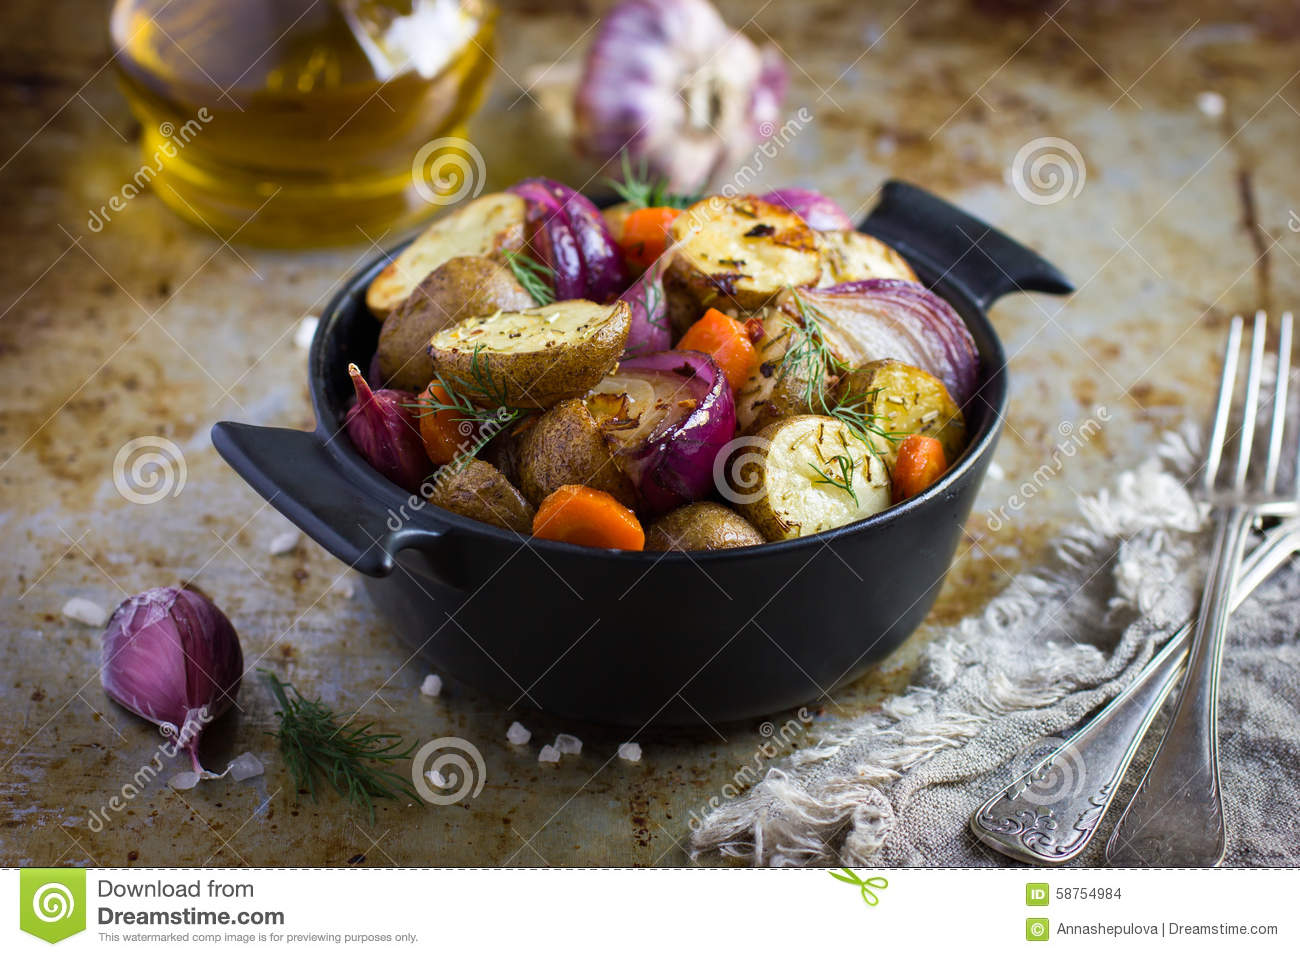 Roasted Potatoes With Onions, Carrot And Garlic Stock Photo.